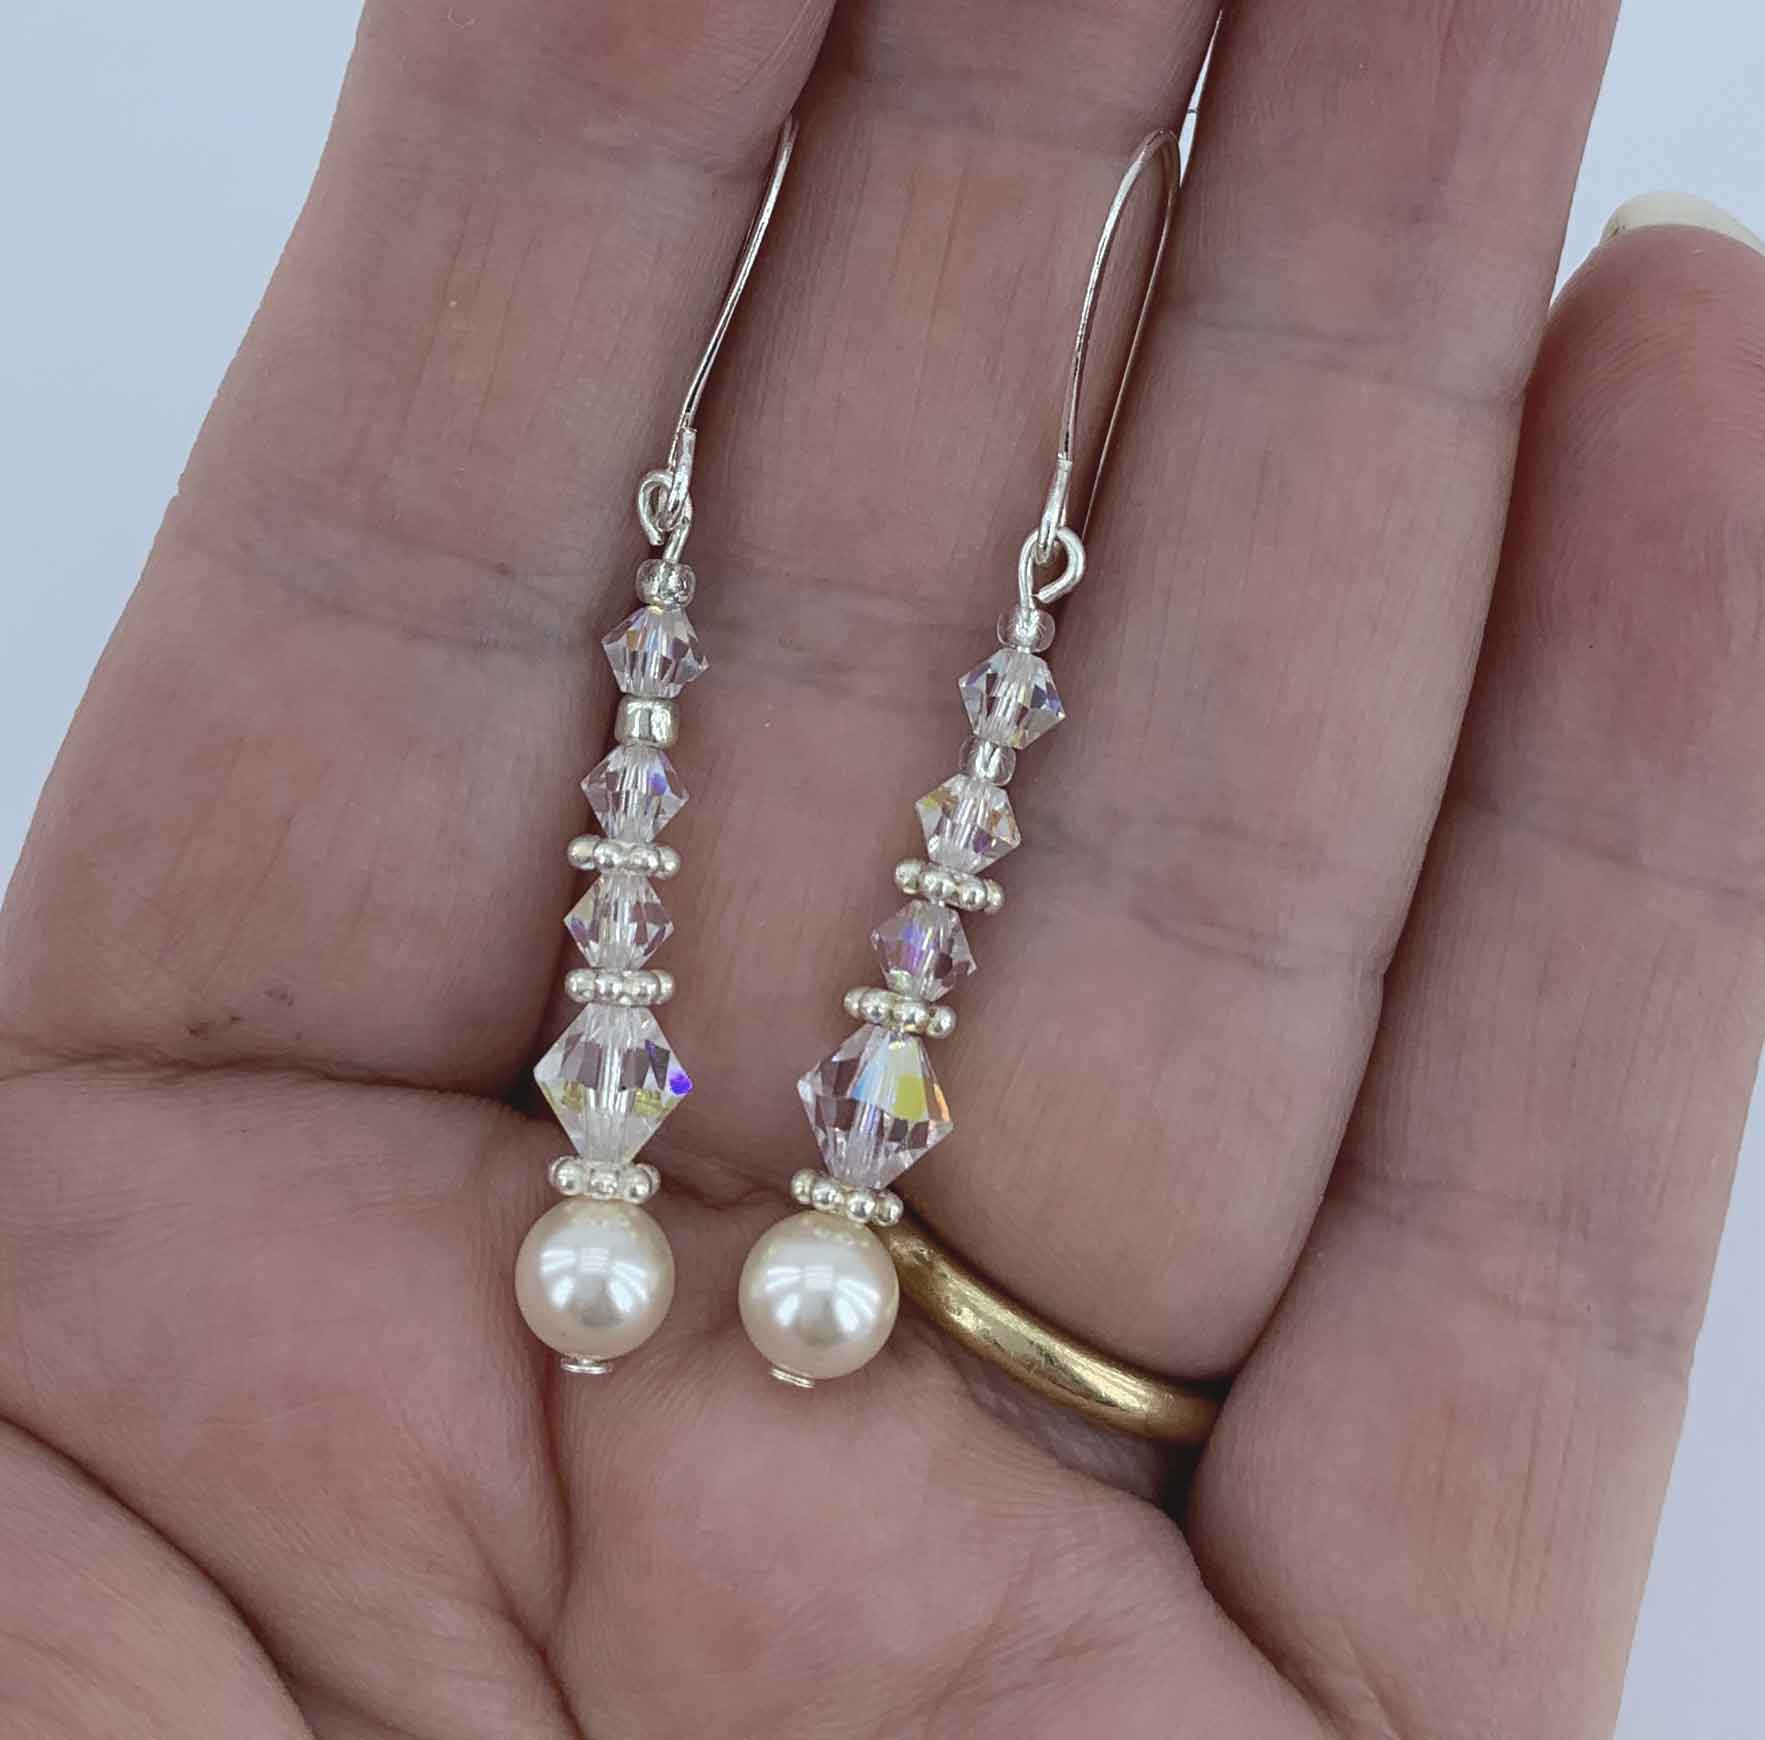 Frenelle-Jewellery-Earrings---Letticia-Pearl-1_SGDVPJE6REWG.jpg